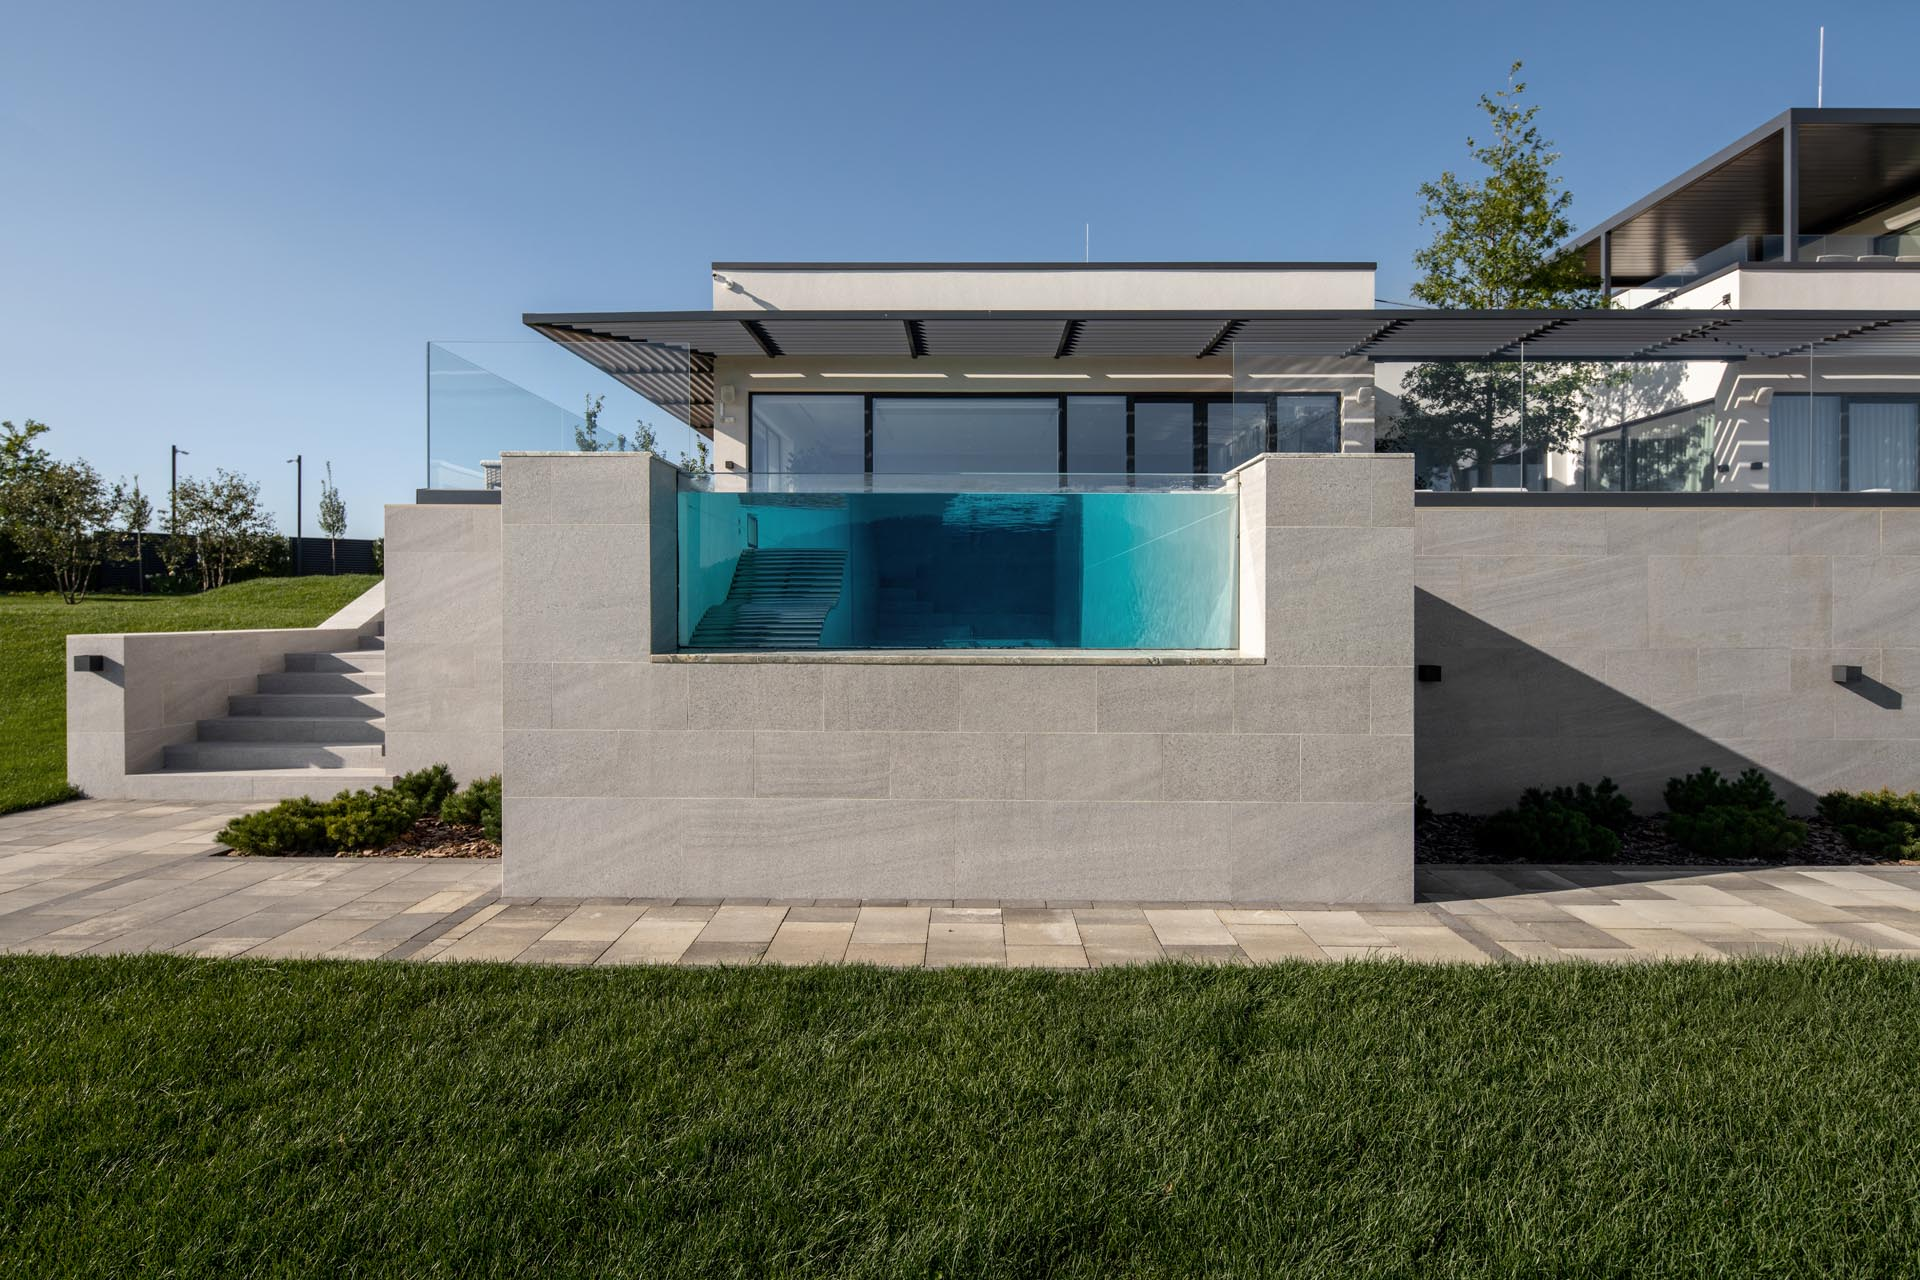 A 52ft (16m) long pool includes a window at one end, allowing the user to admire the landscape from within the pool.